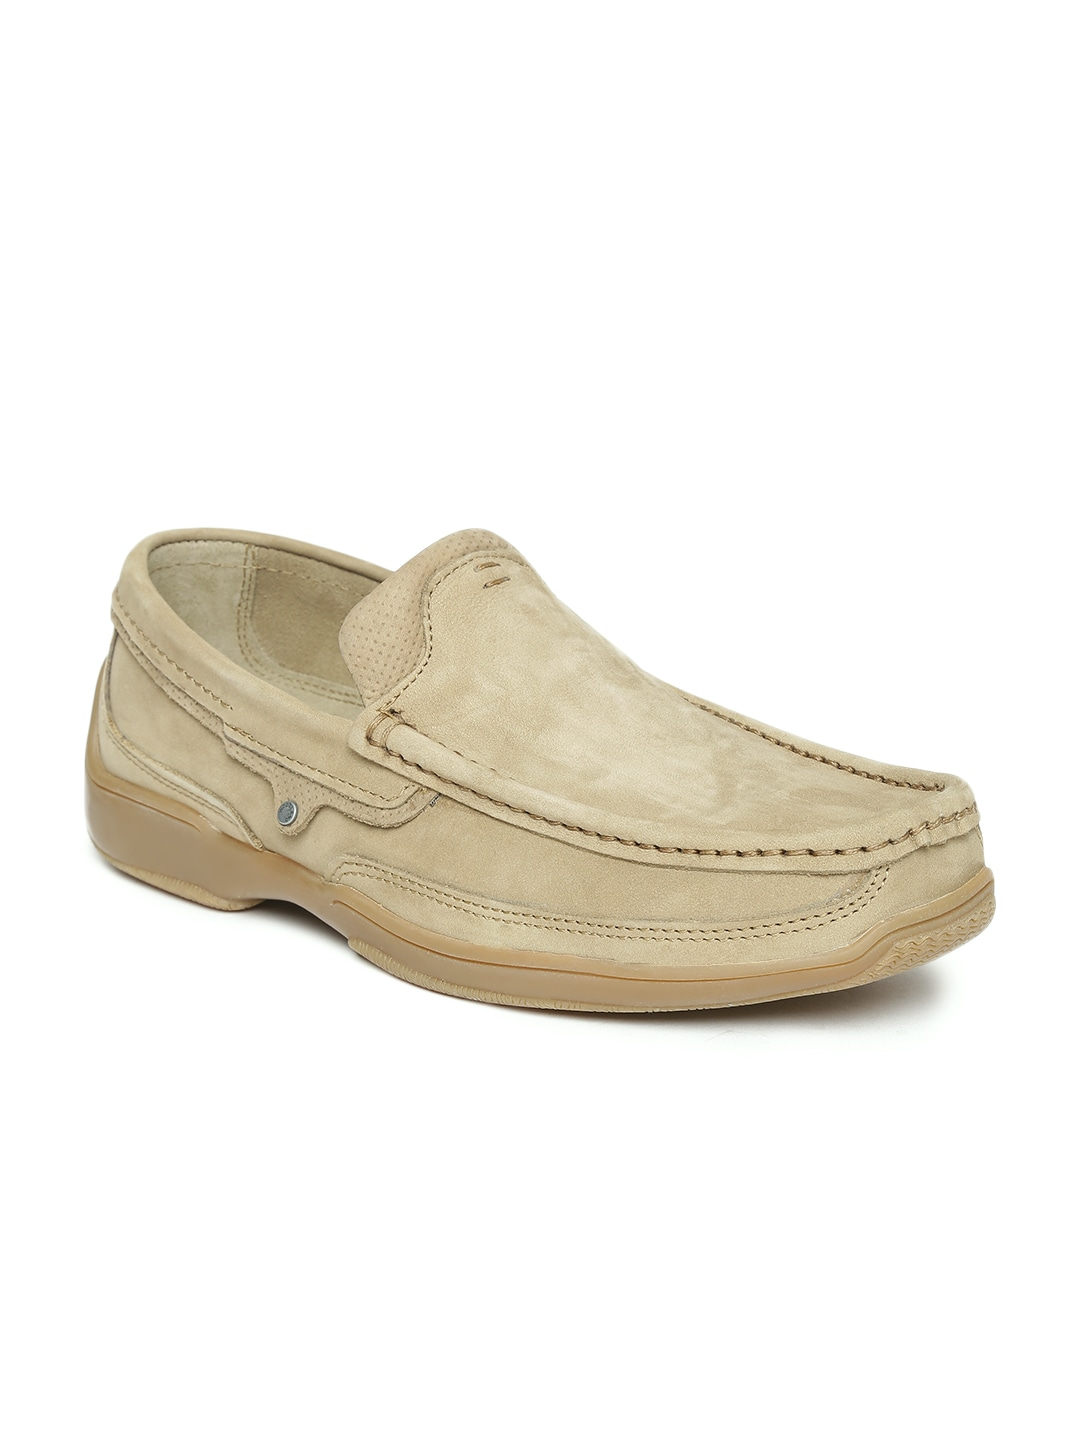 93fa7e1925 Woodland Slip Casual Shoes - Buy Woodland Slip Casual Shoes online in India